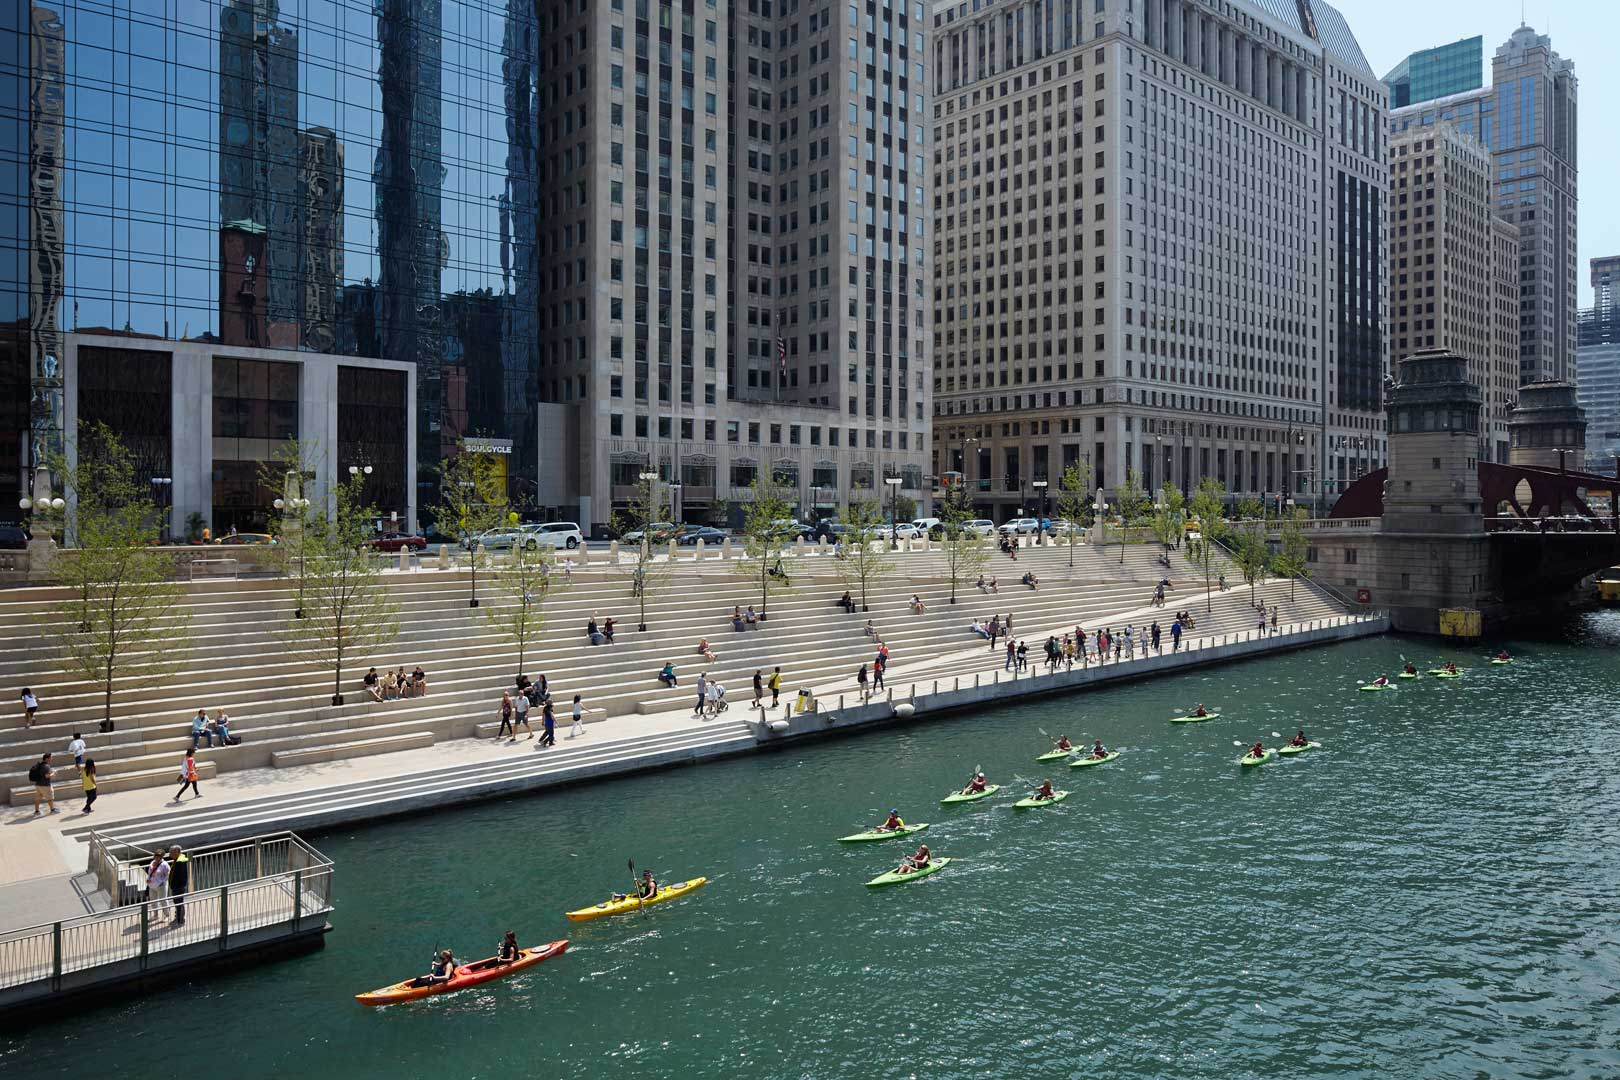 Chicago_Riverwalk_27